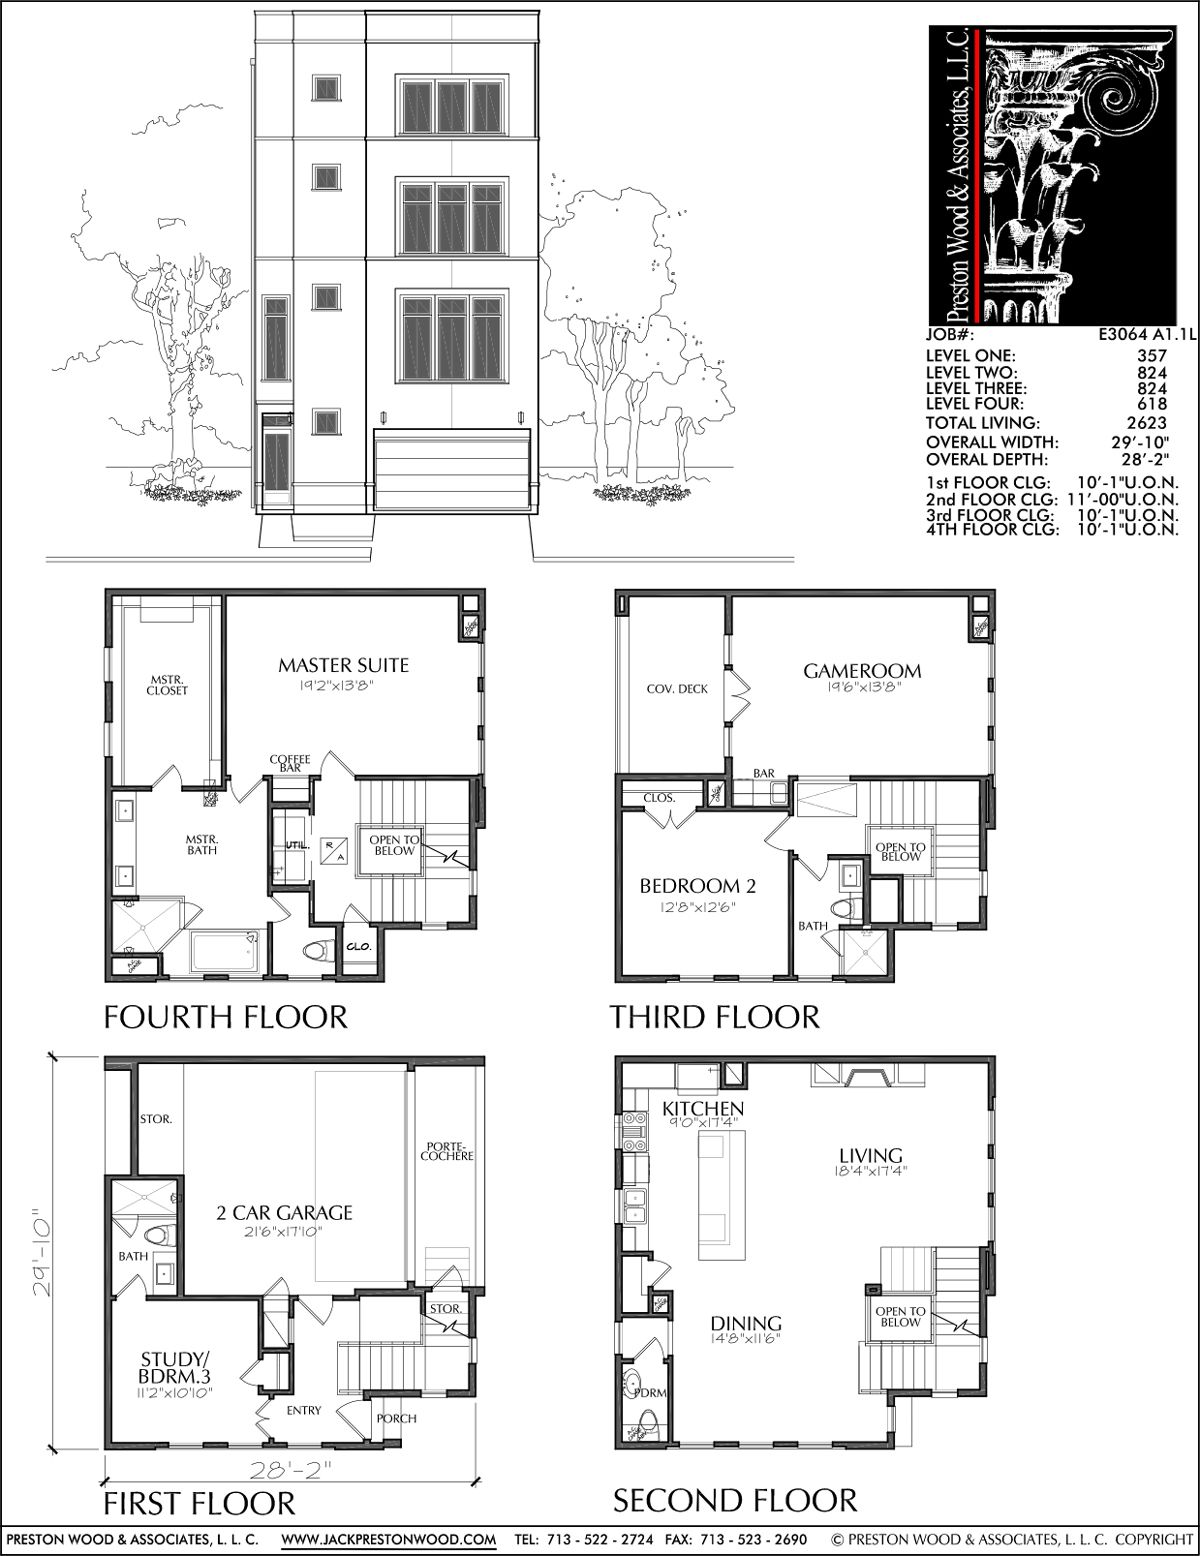 Townhome plan e3064 a1 1 r c h pinterest for Townhome layouts